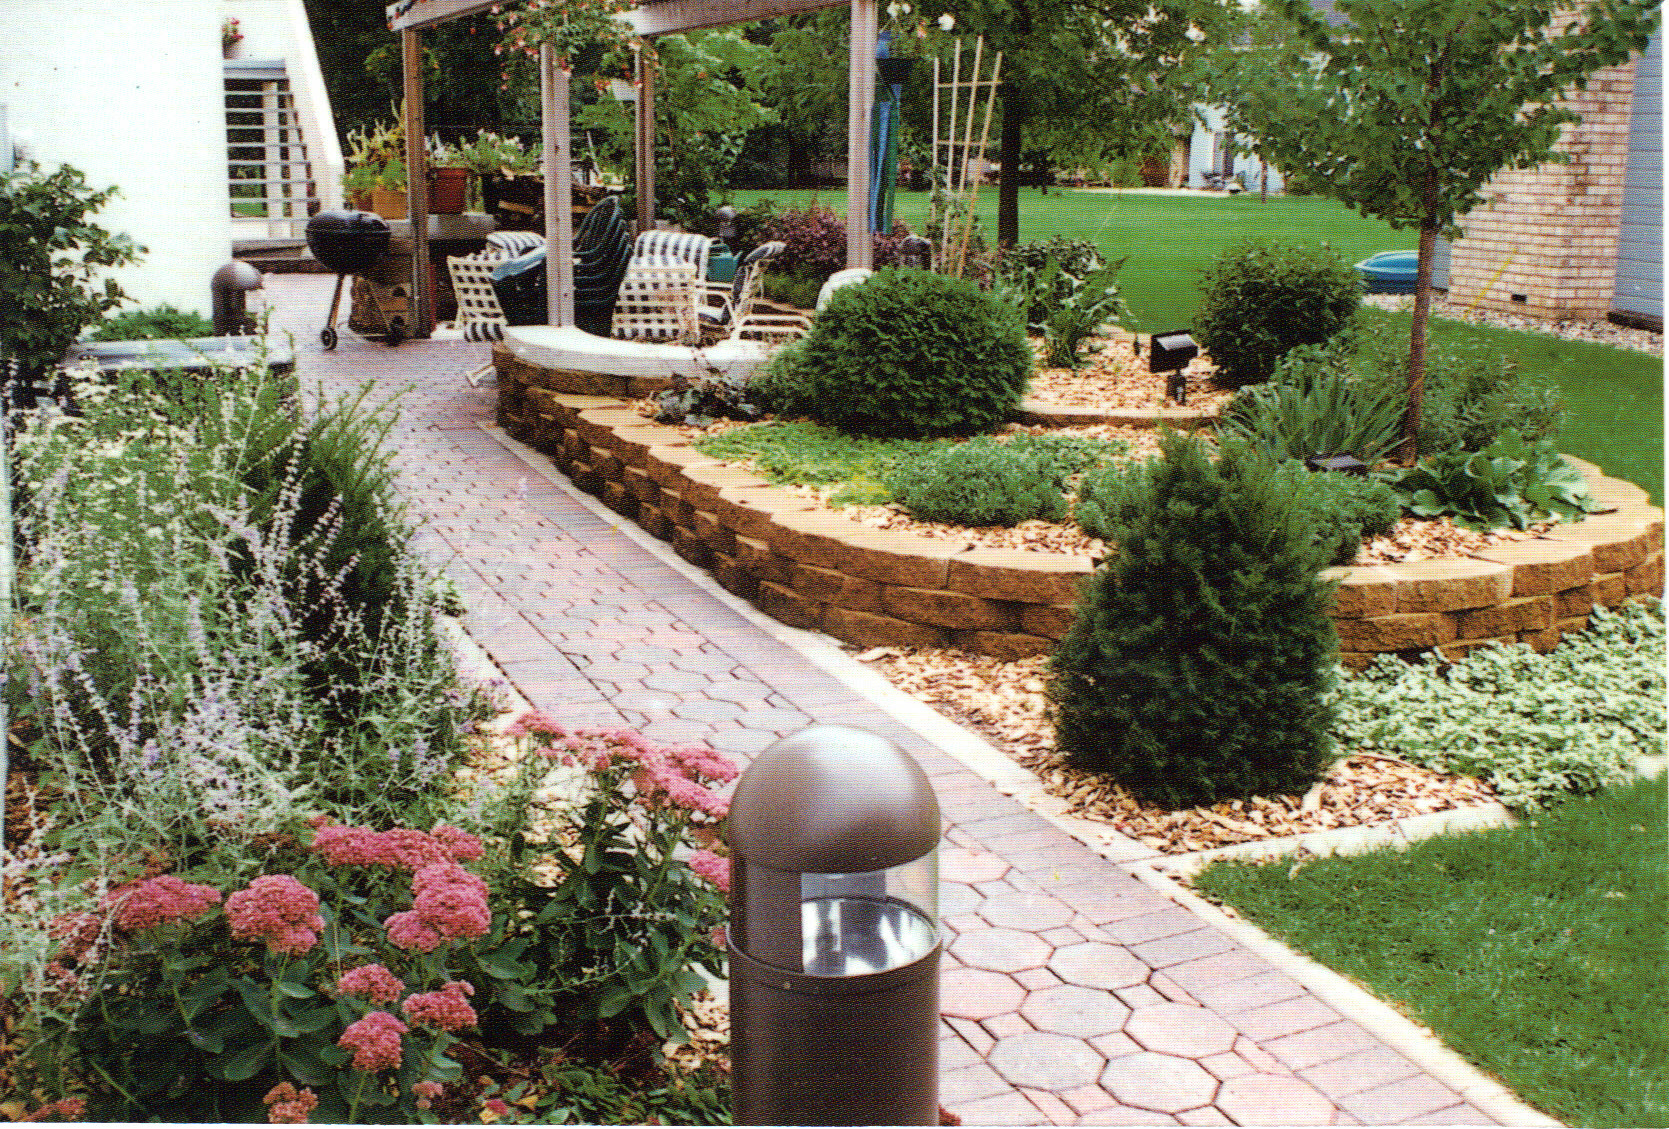 Paver Walkway, Block Planter and Complete Landscape